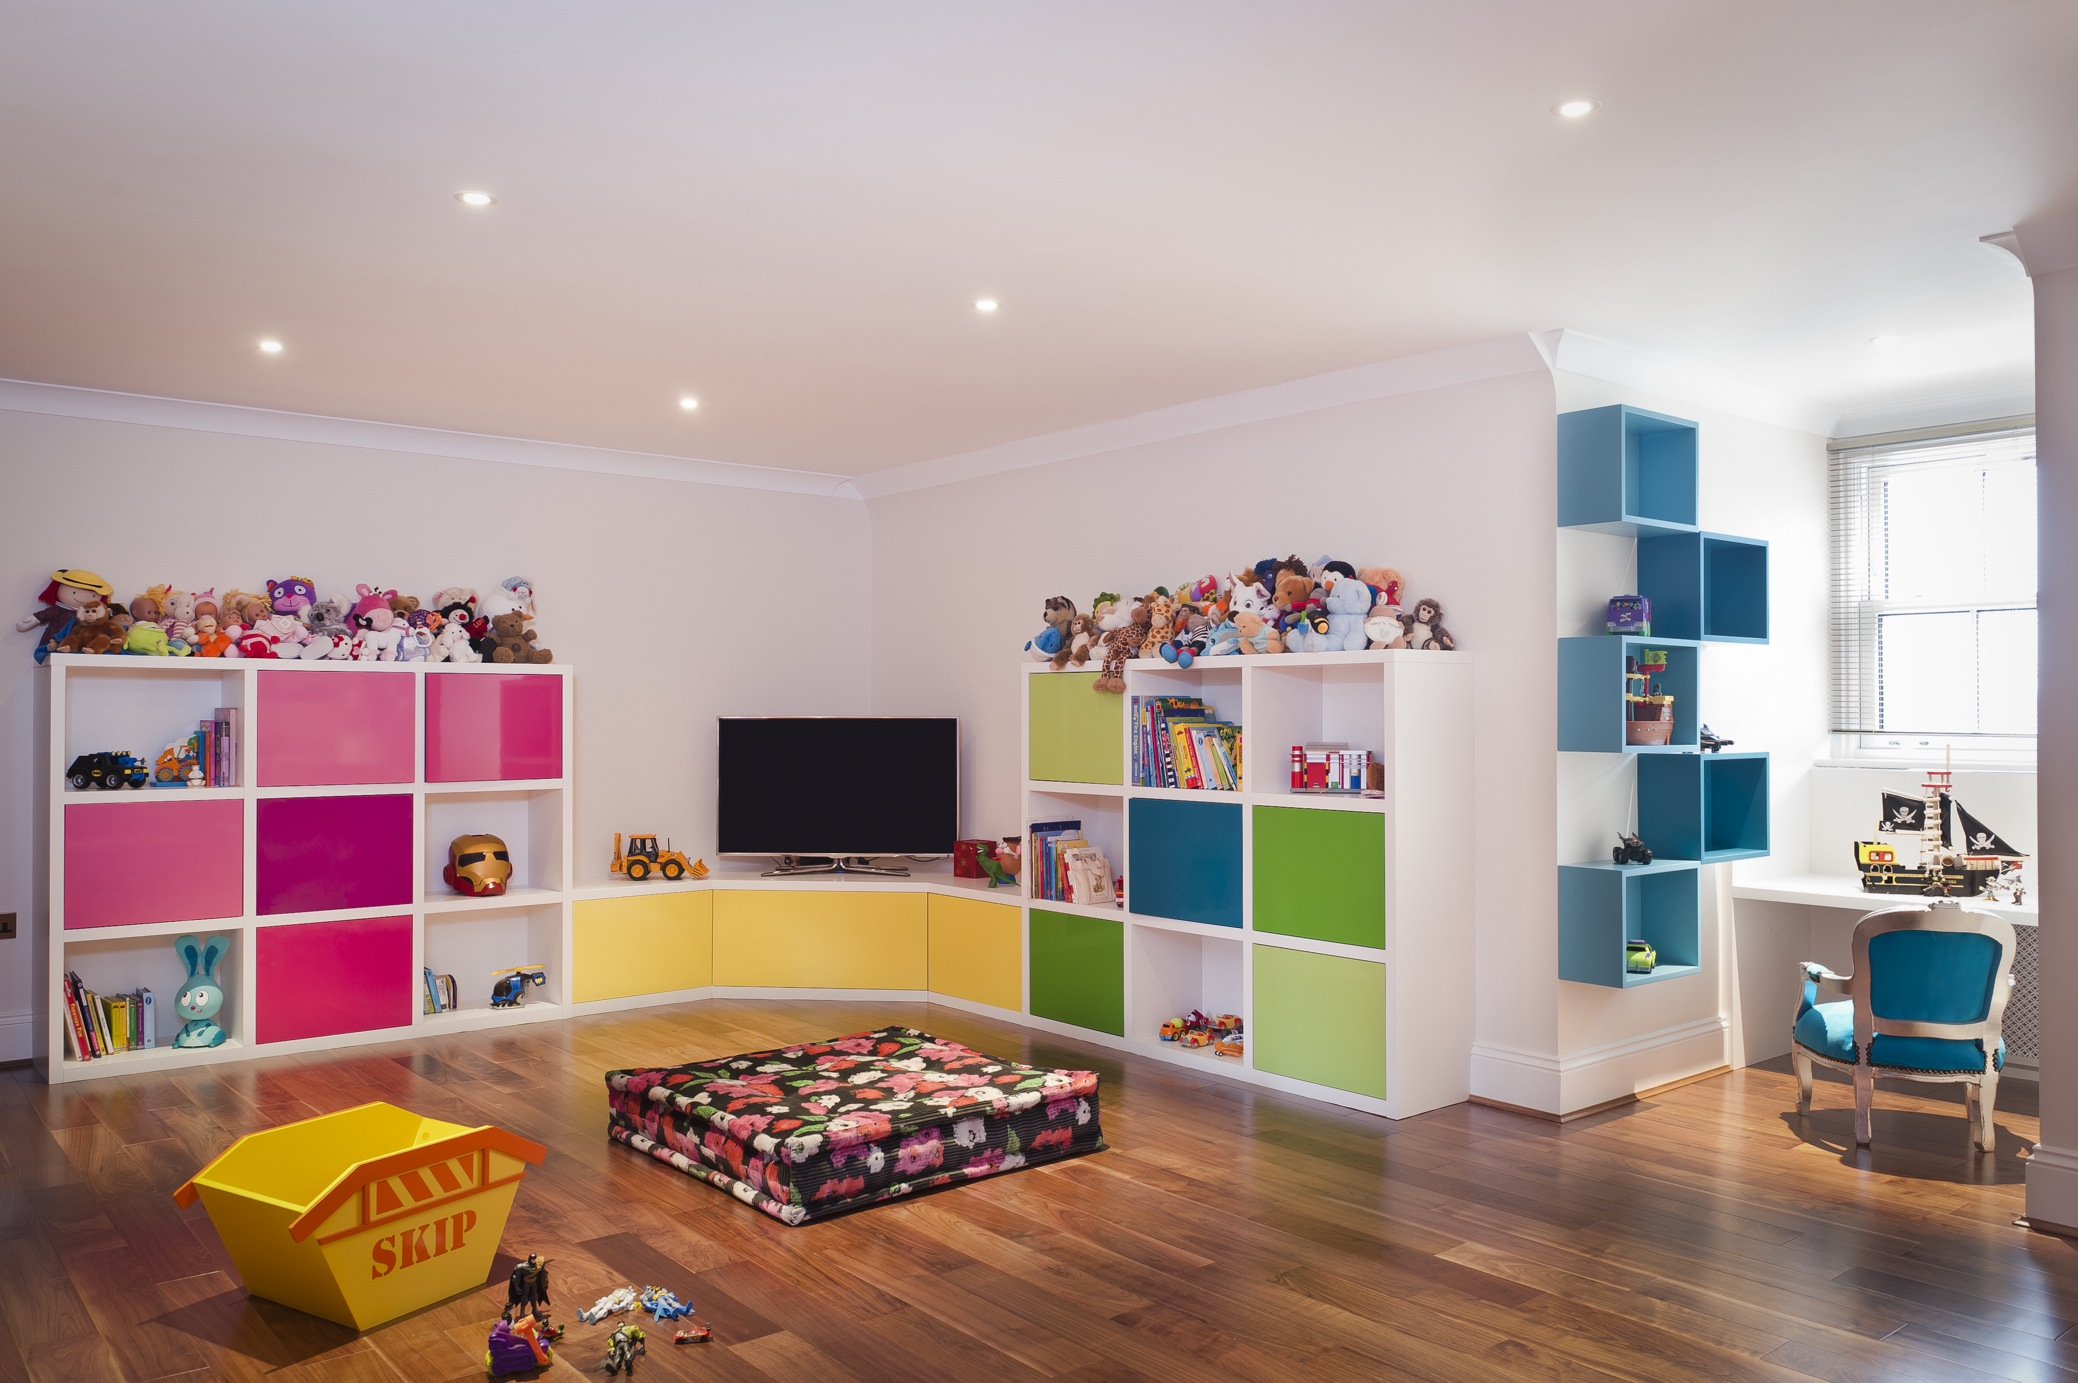 Playroom Ideas For Kids 27 Great Kid's Playroom Ideas  Architecture & Design